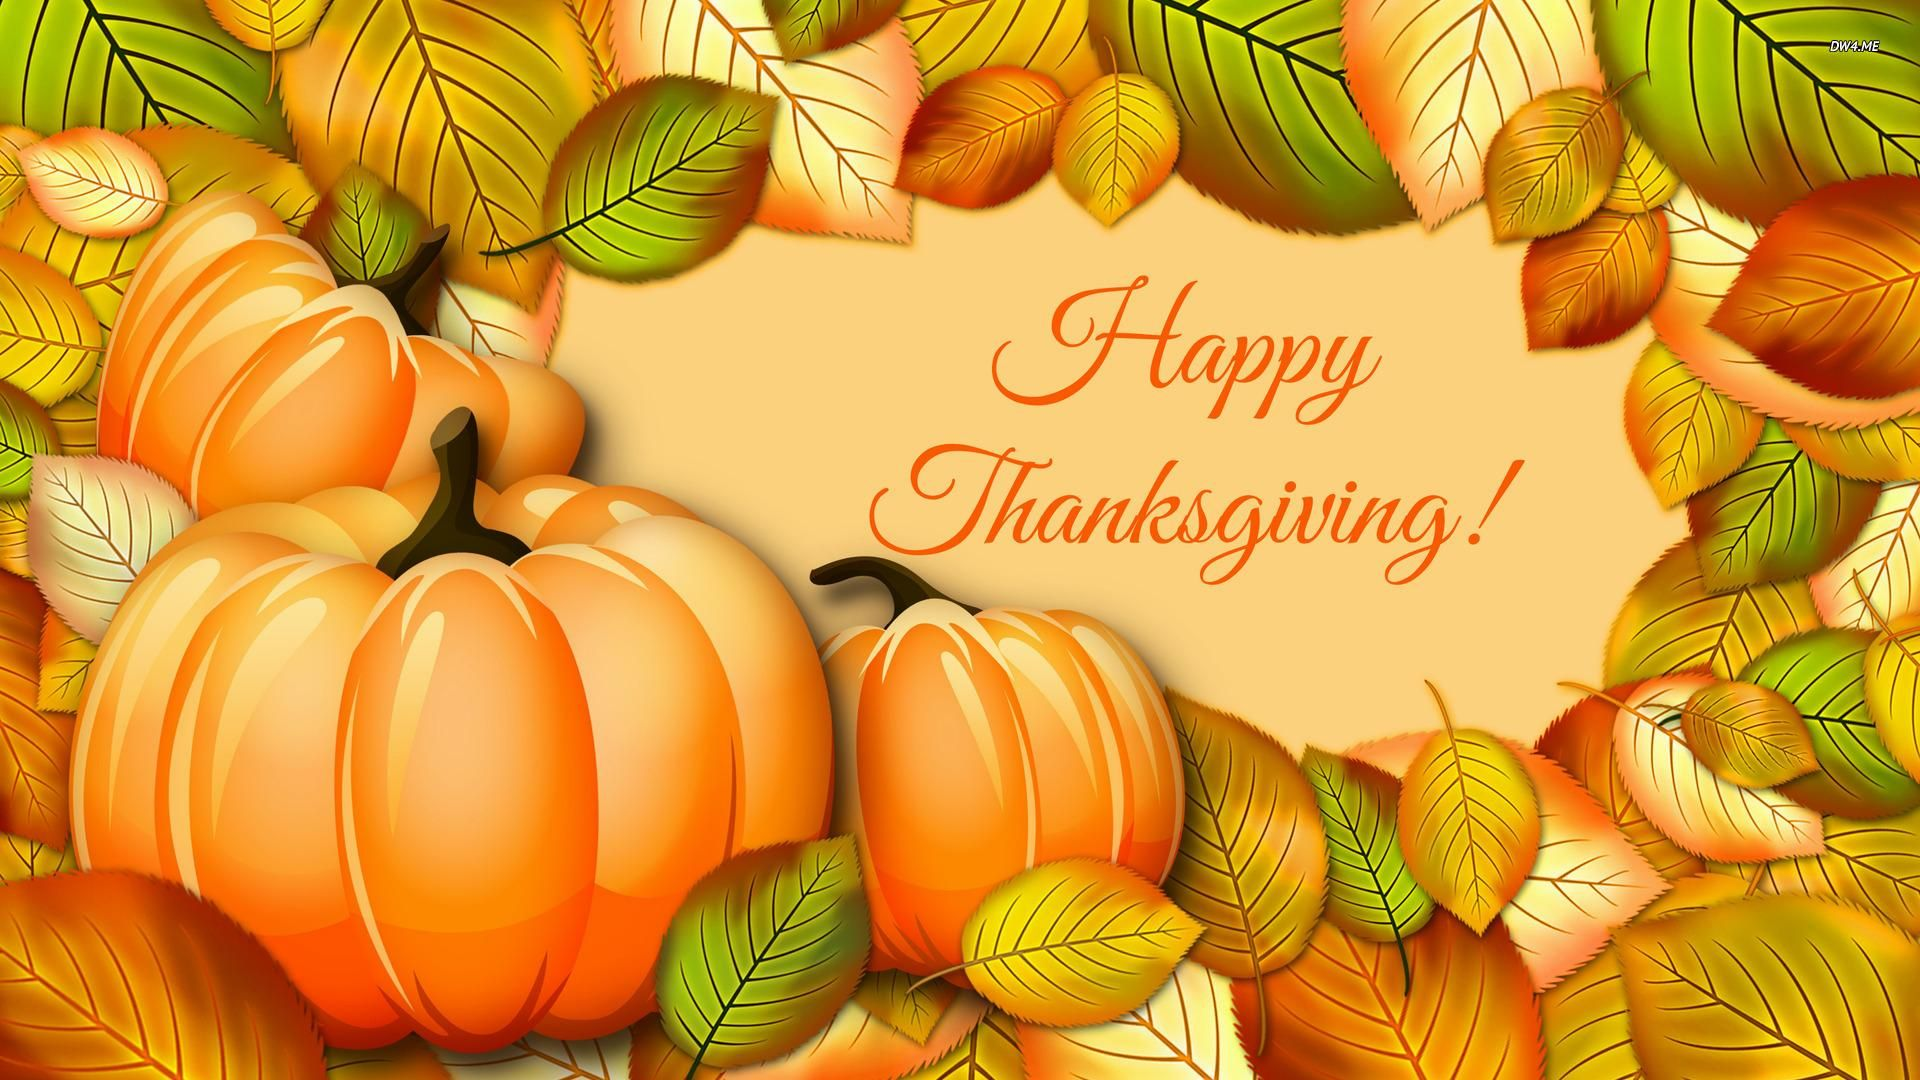 Thanksgiving Wallpaper For Desktop 1920 1080 Thanksgiving Desktop Wallpapers 52 Happy Thanksgiving Wallpaper Happy Thanksgiving Day Happy Thanksgiving Images